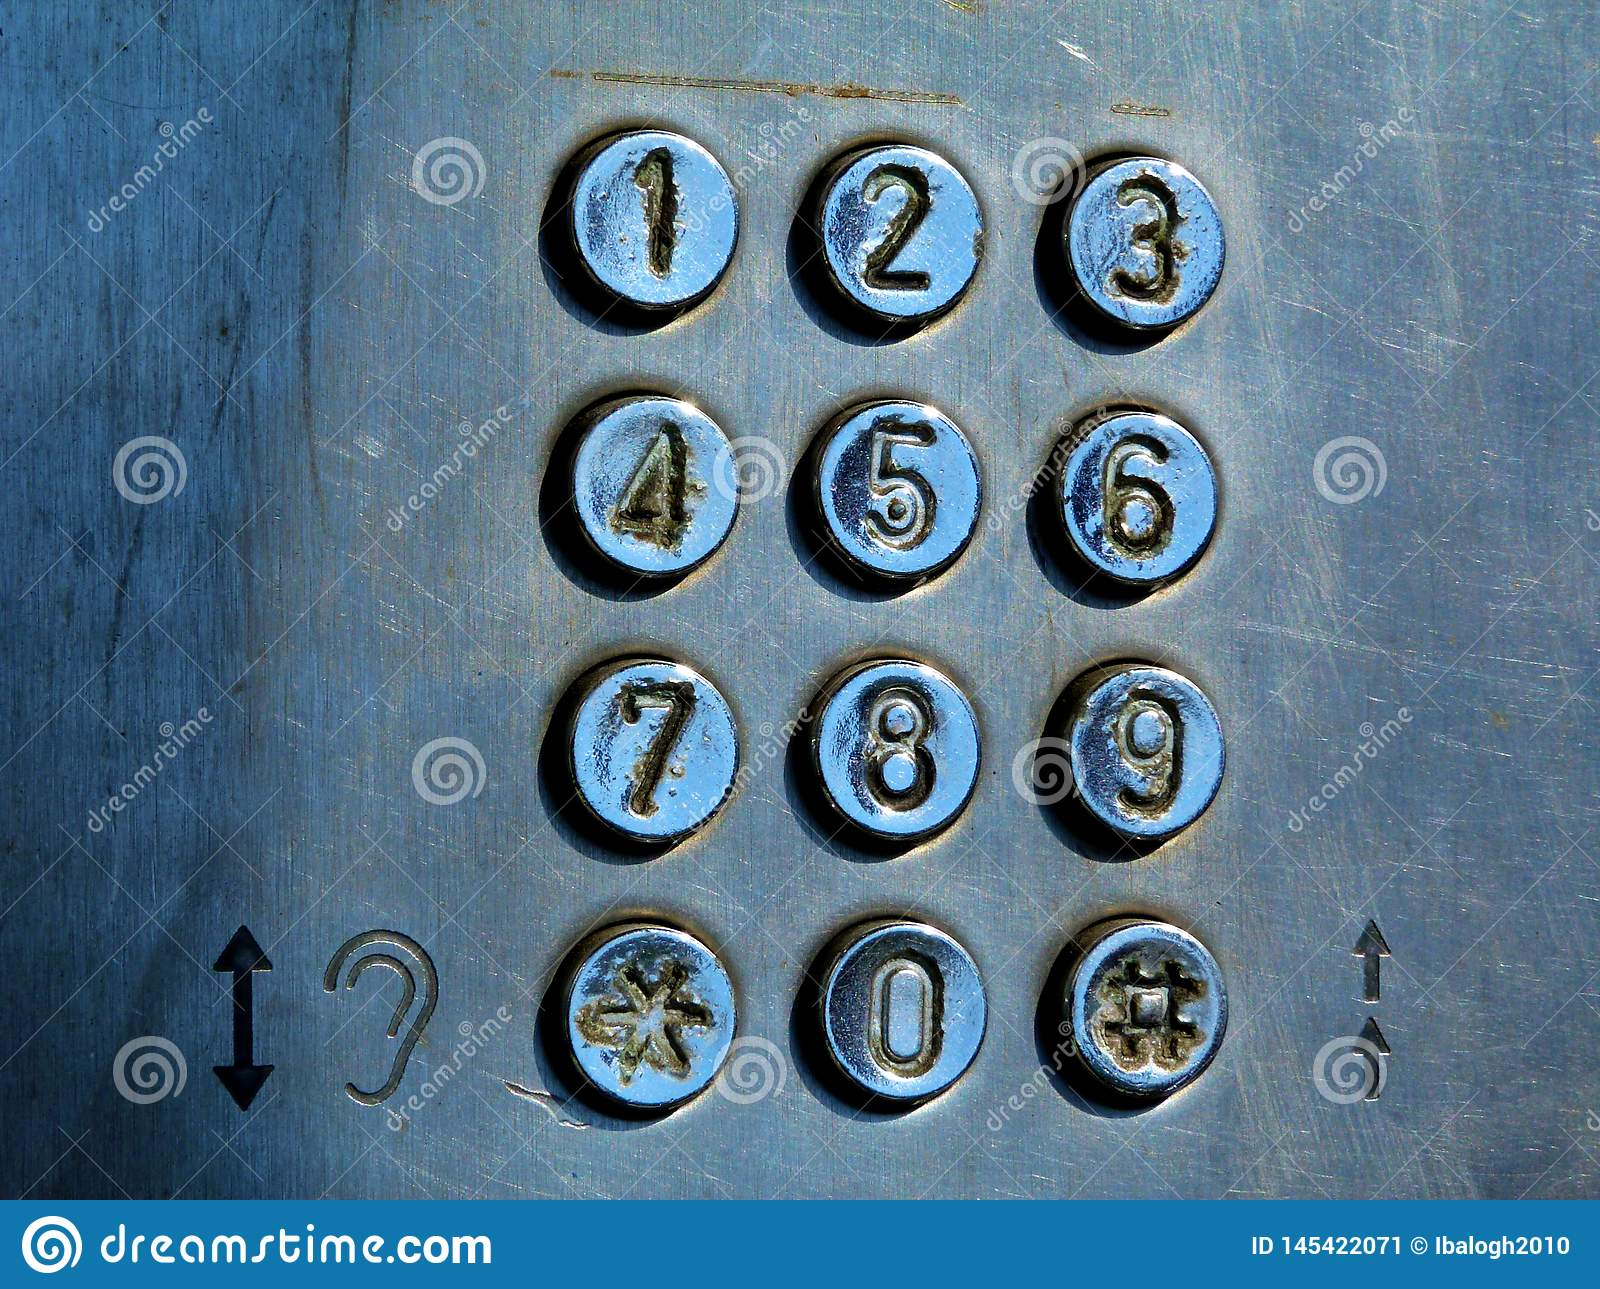 Dial Pad And Buttons Of Old Coin Operated Street Phone Stock